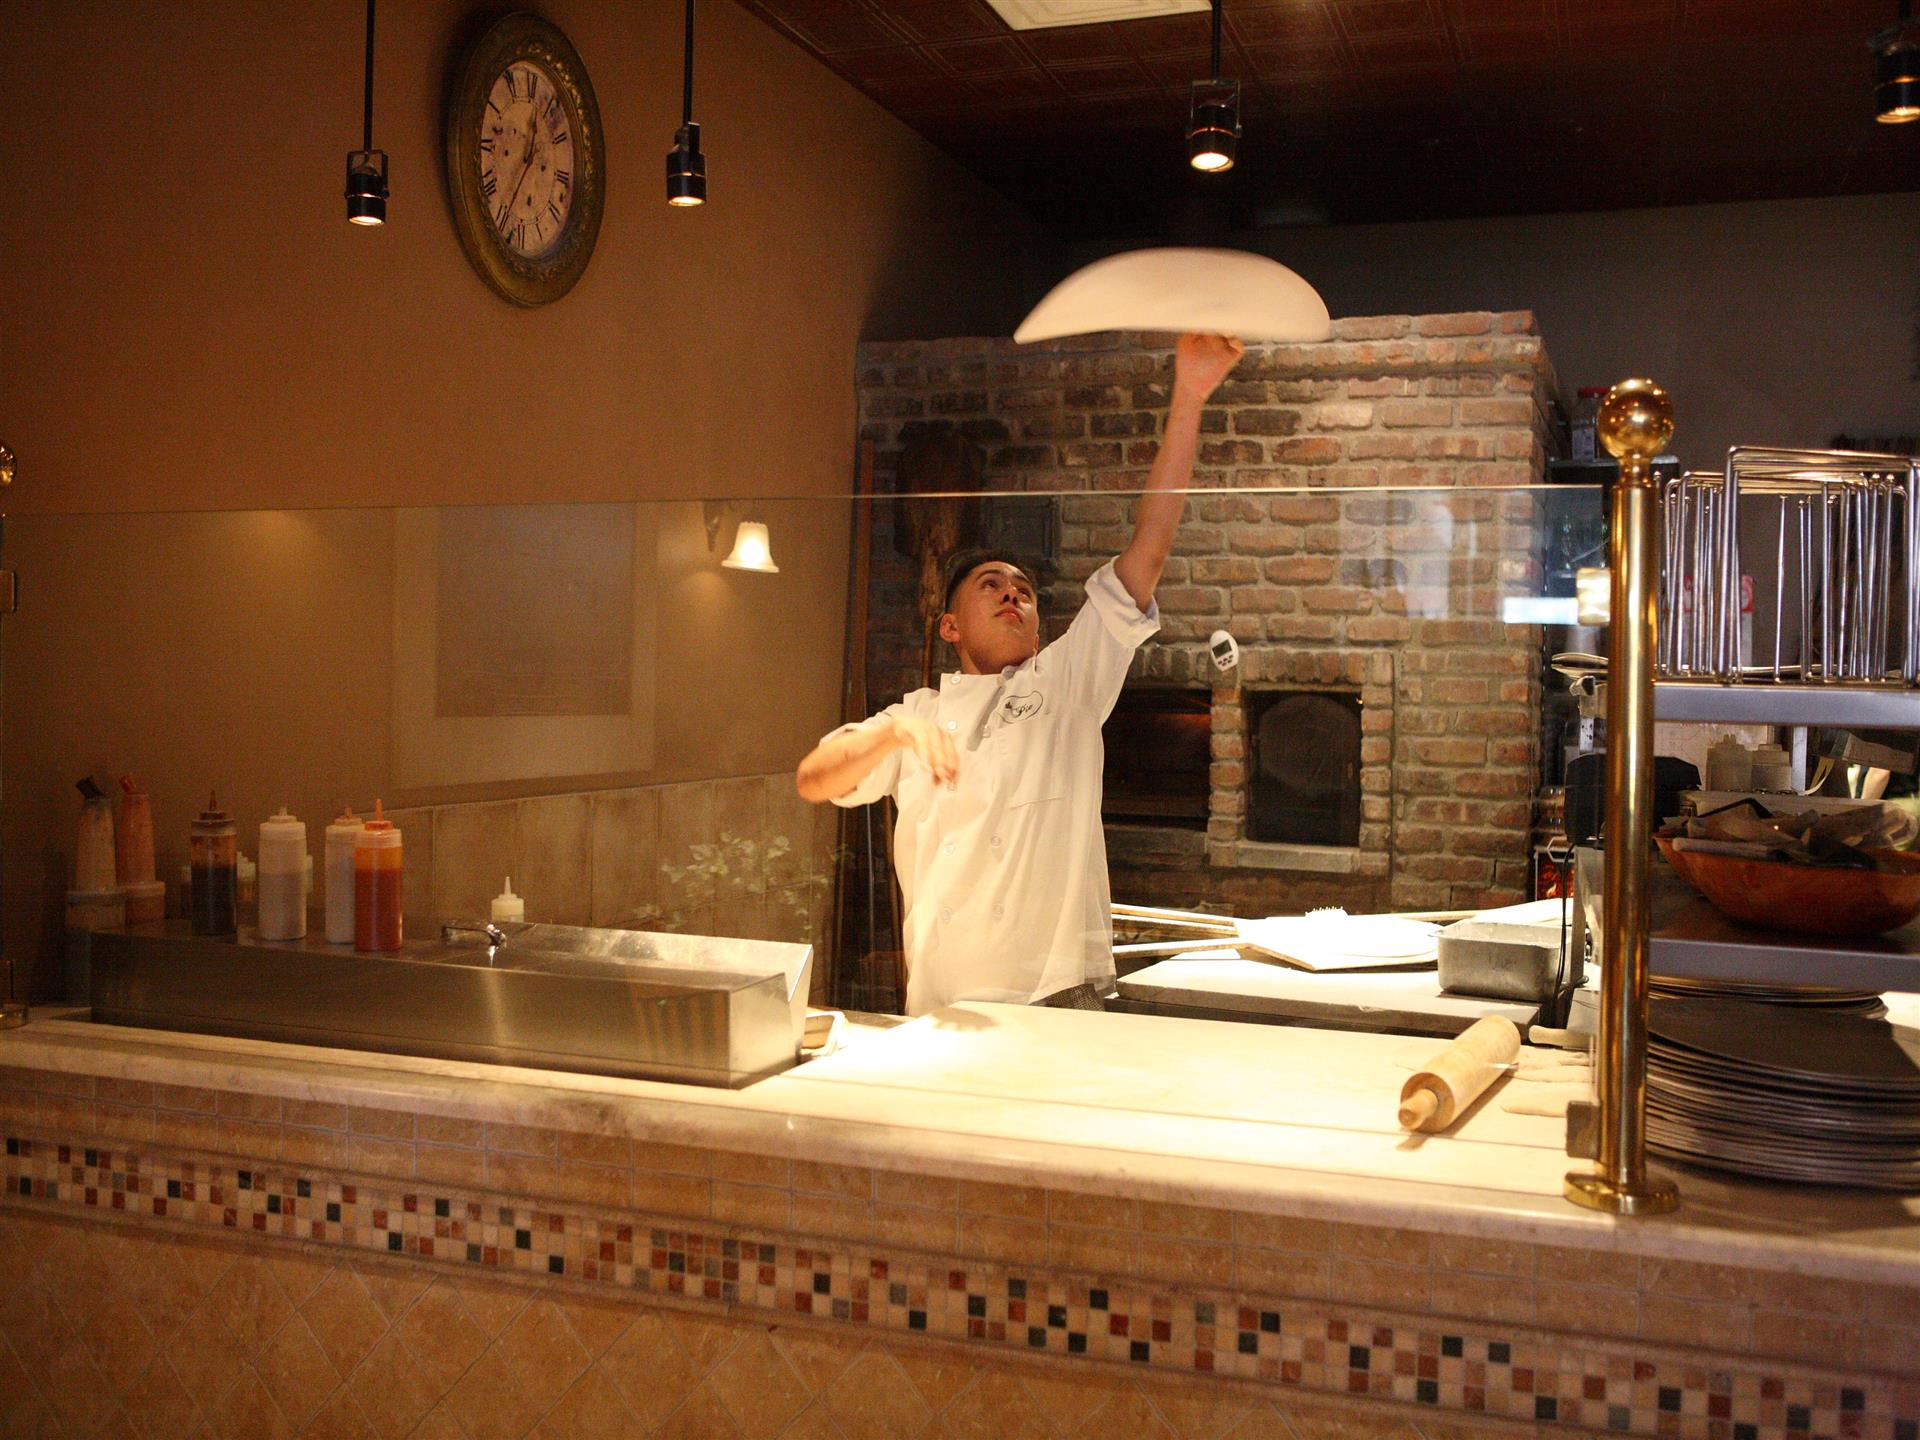 pizza man throwing dough